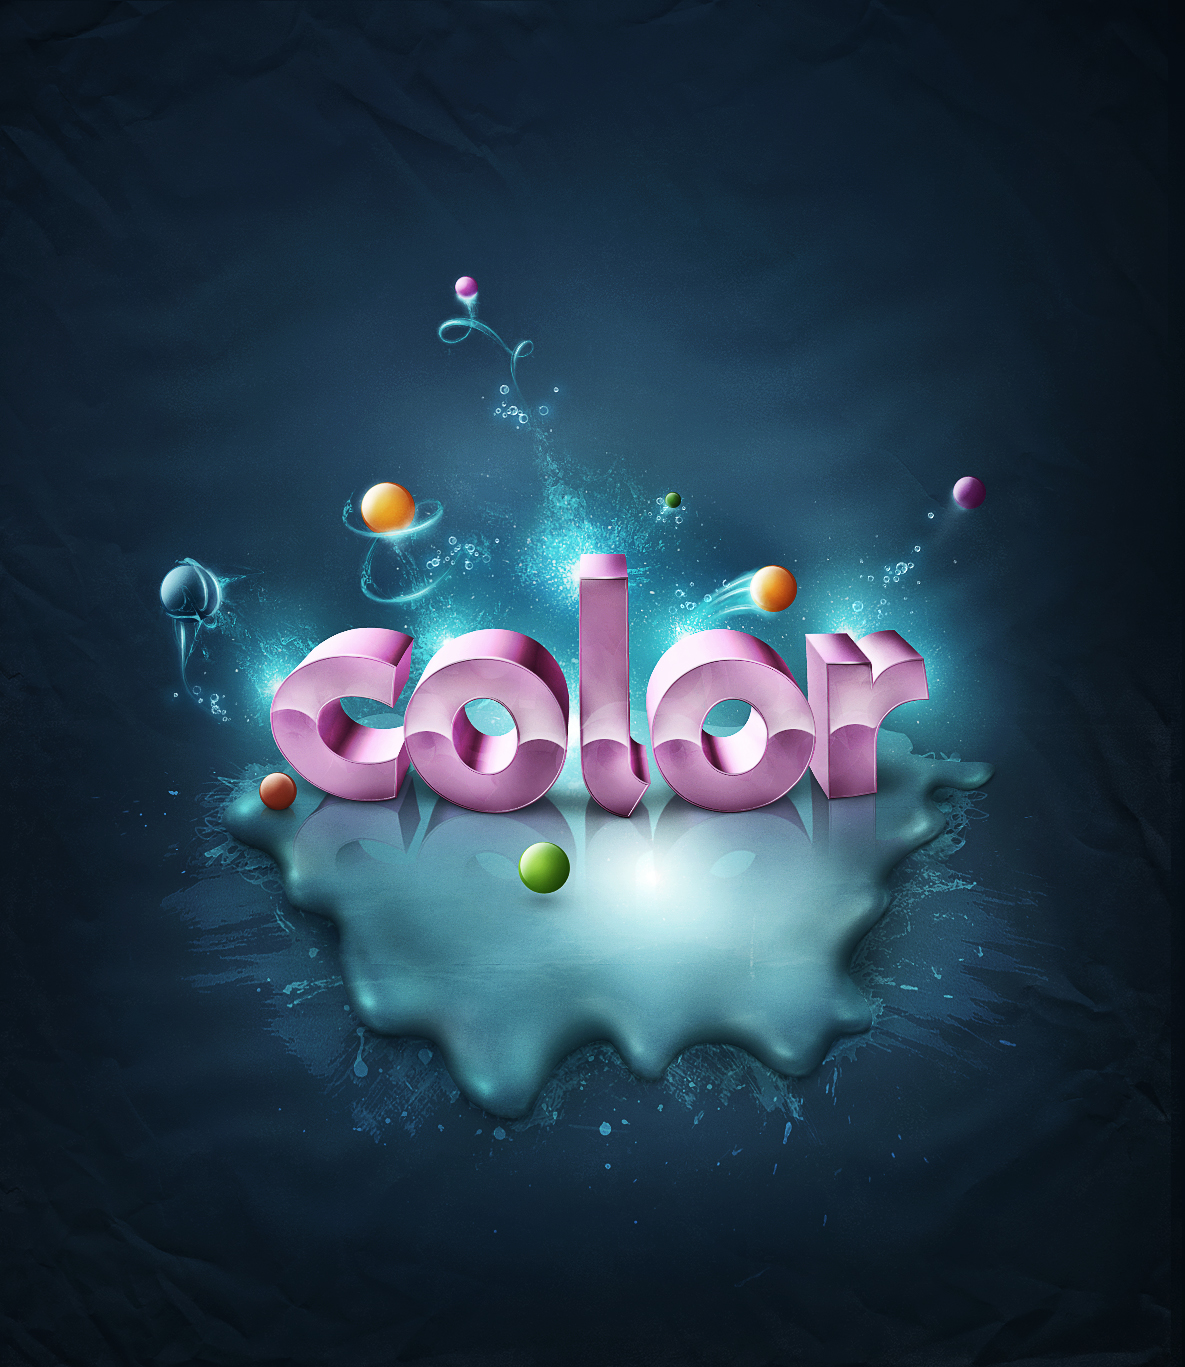 40 Photoshop Tutorials To Create Gorgeous 3D Text Effects